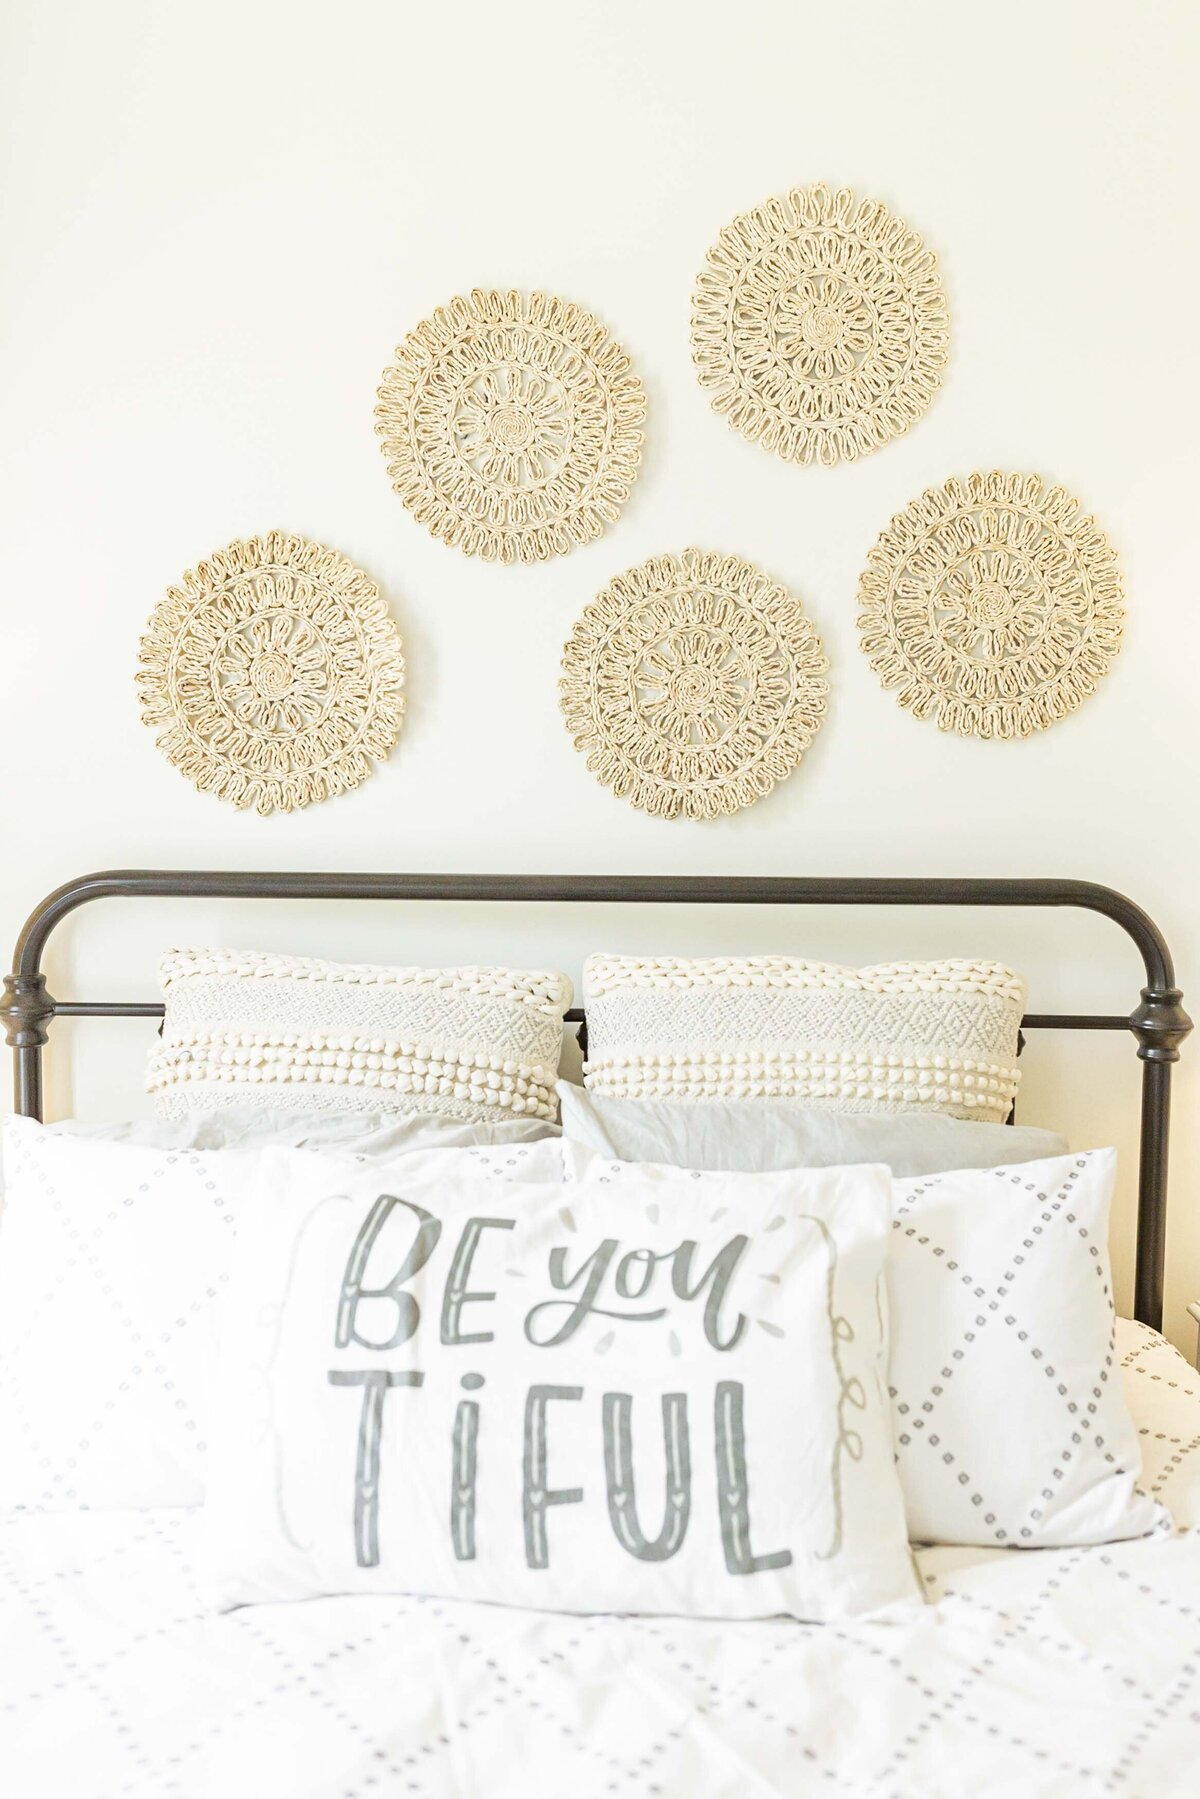 guest-bedroom-redesign-decor-metal-bedframe5